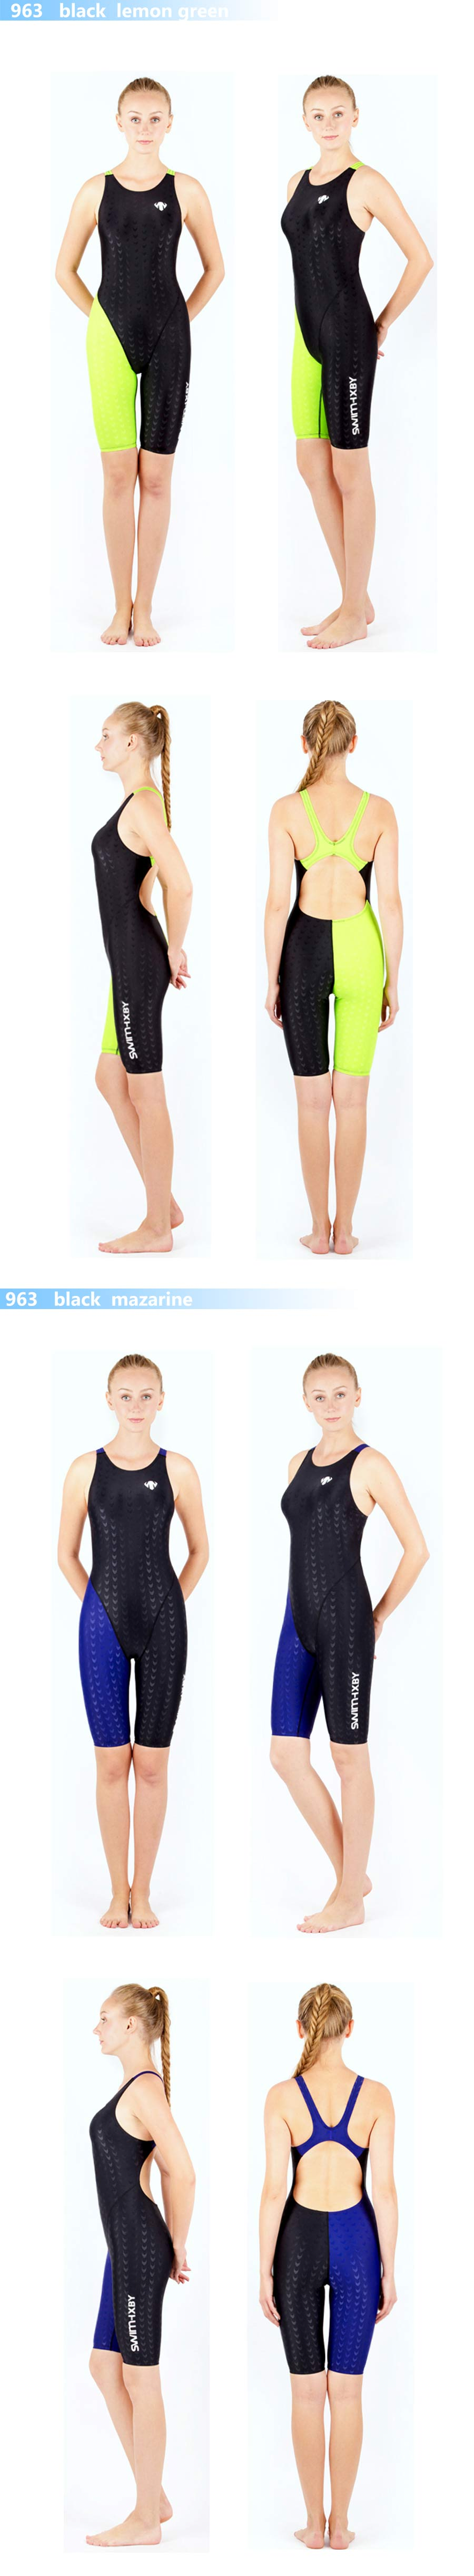 HXBY swimwear girls racing swimsuits sharkskin professional swimsuits knee one piece competition swim suits one piece 4